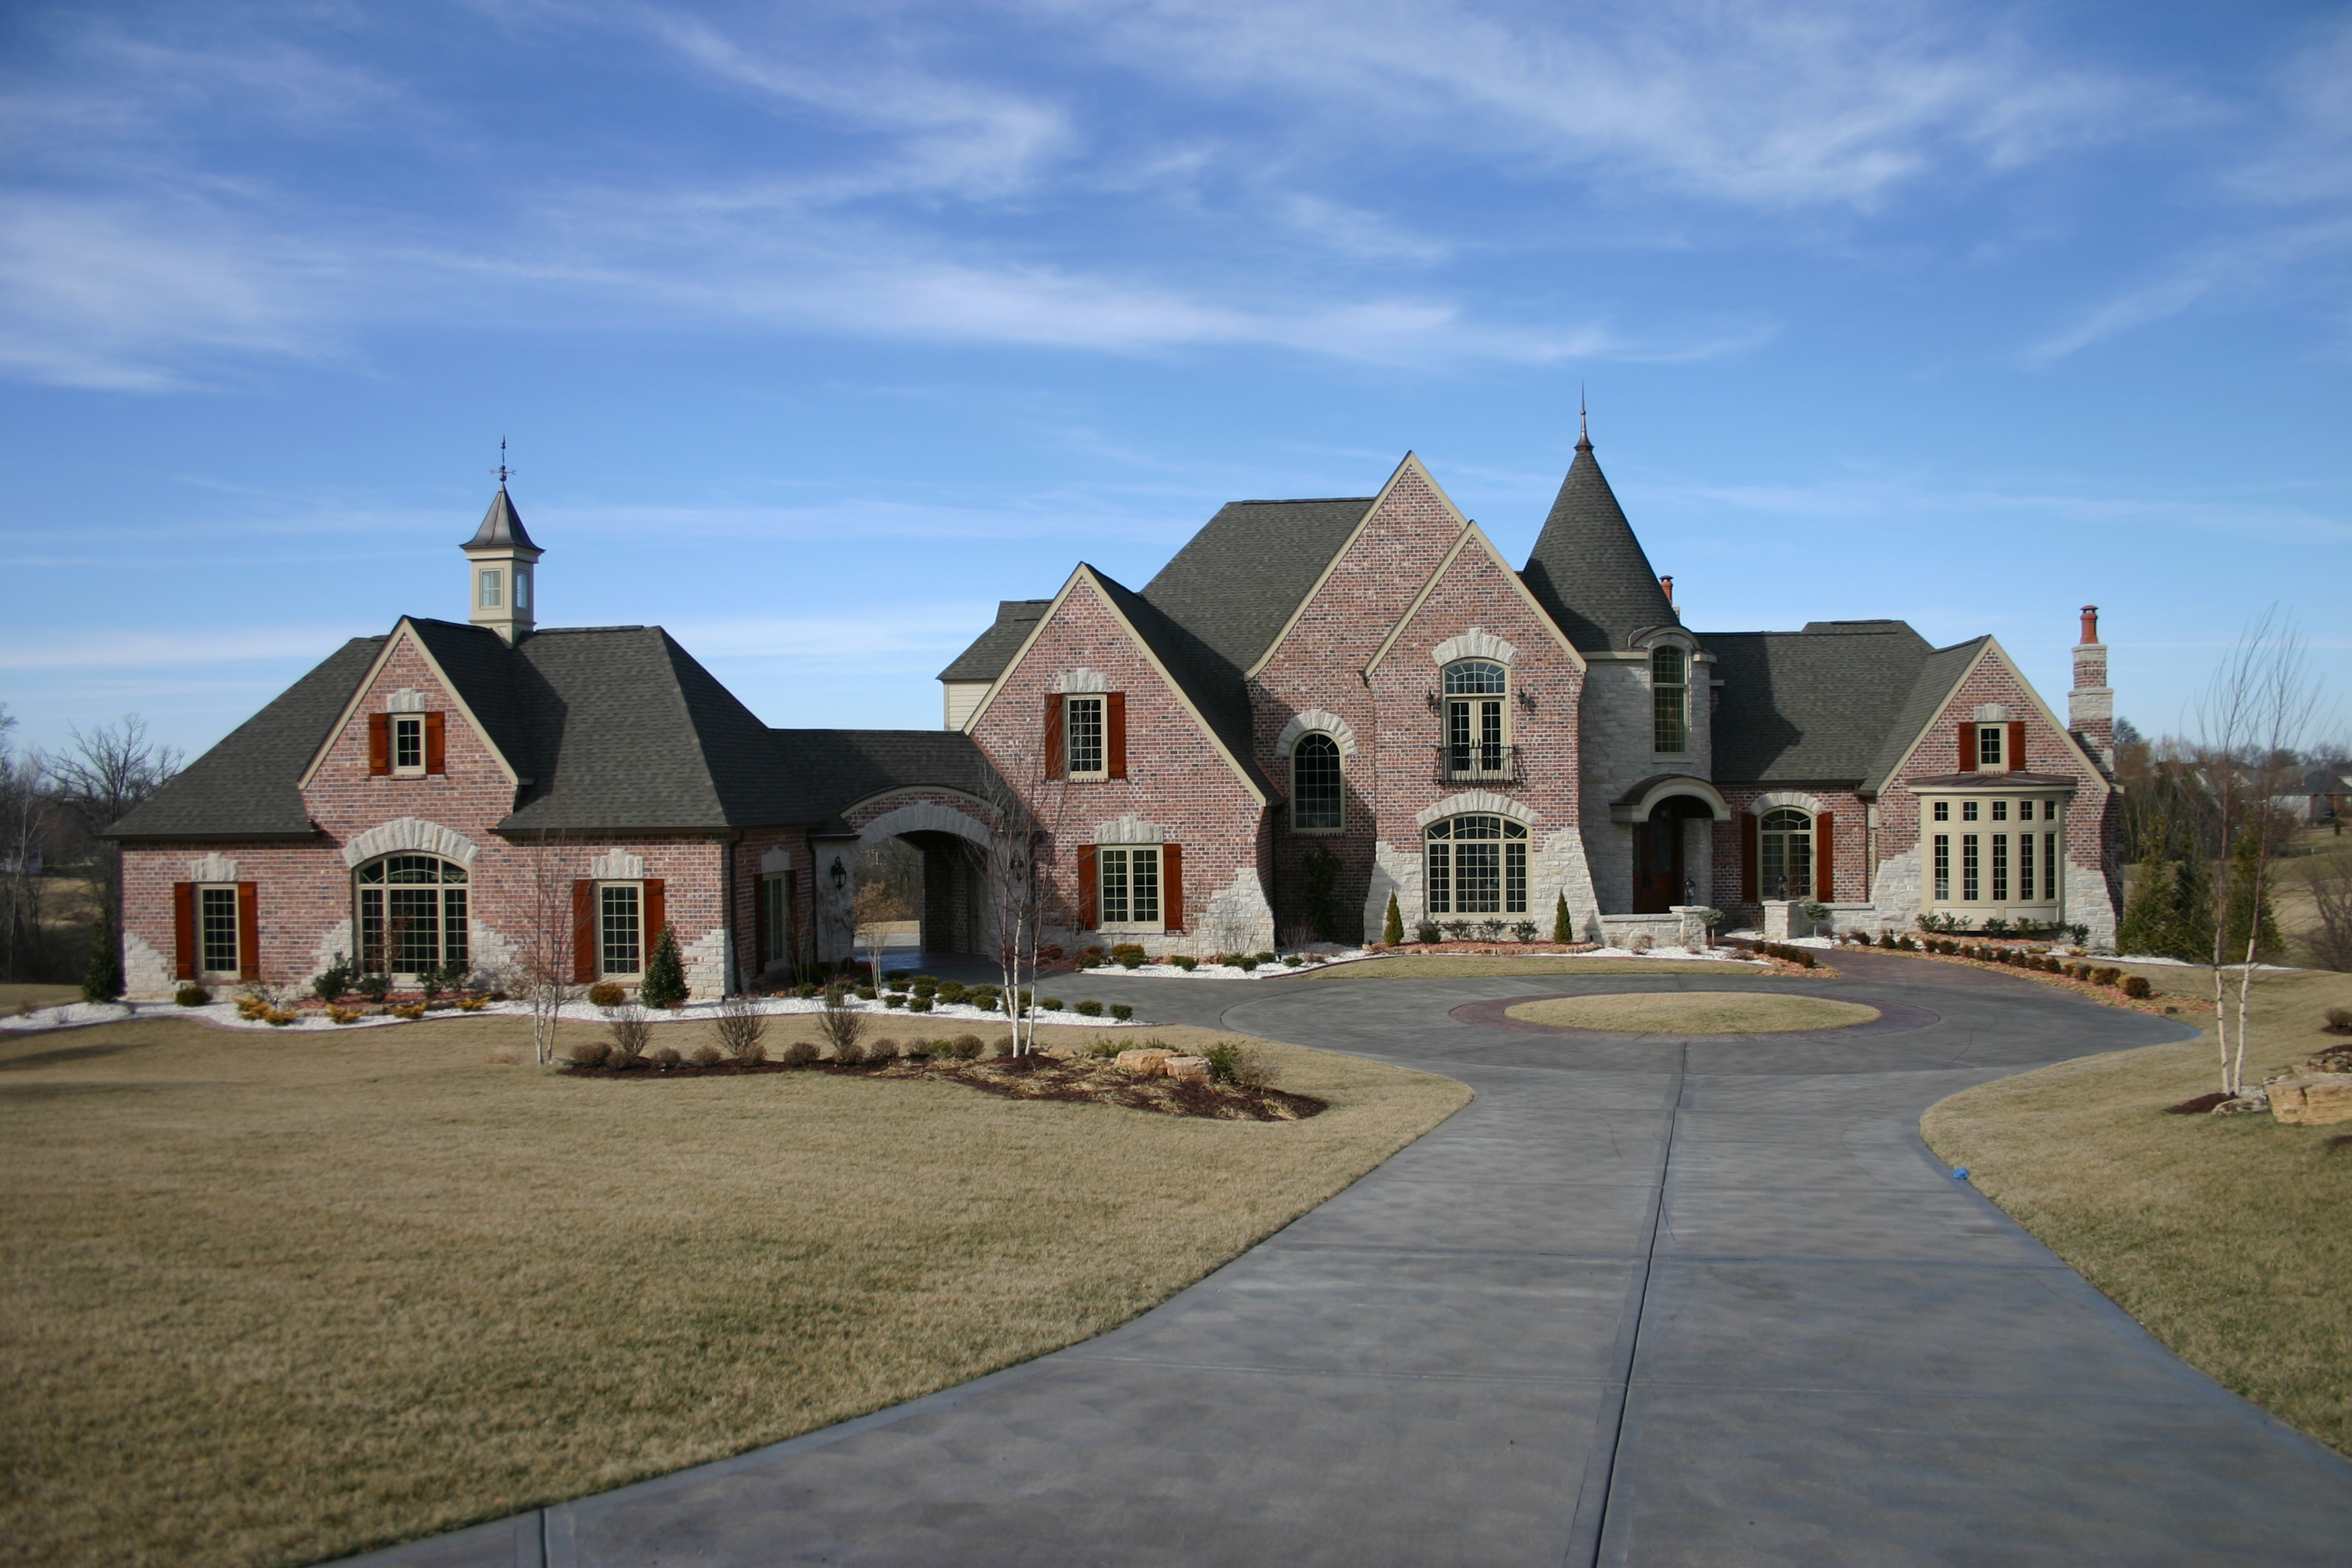 Large Brick House with Round Concrete Driveway